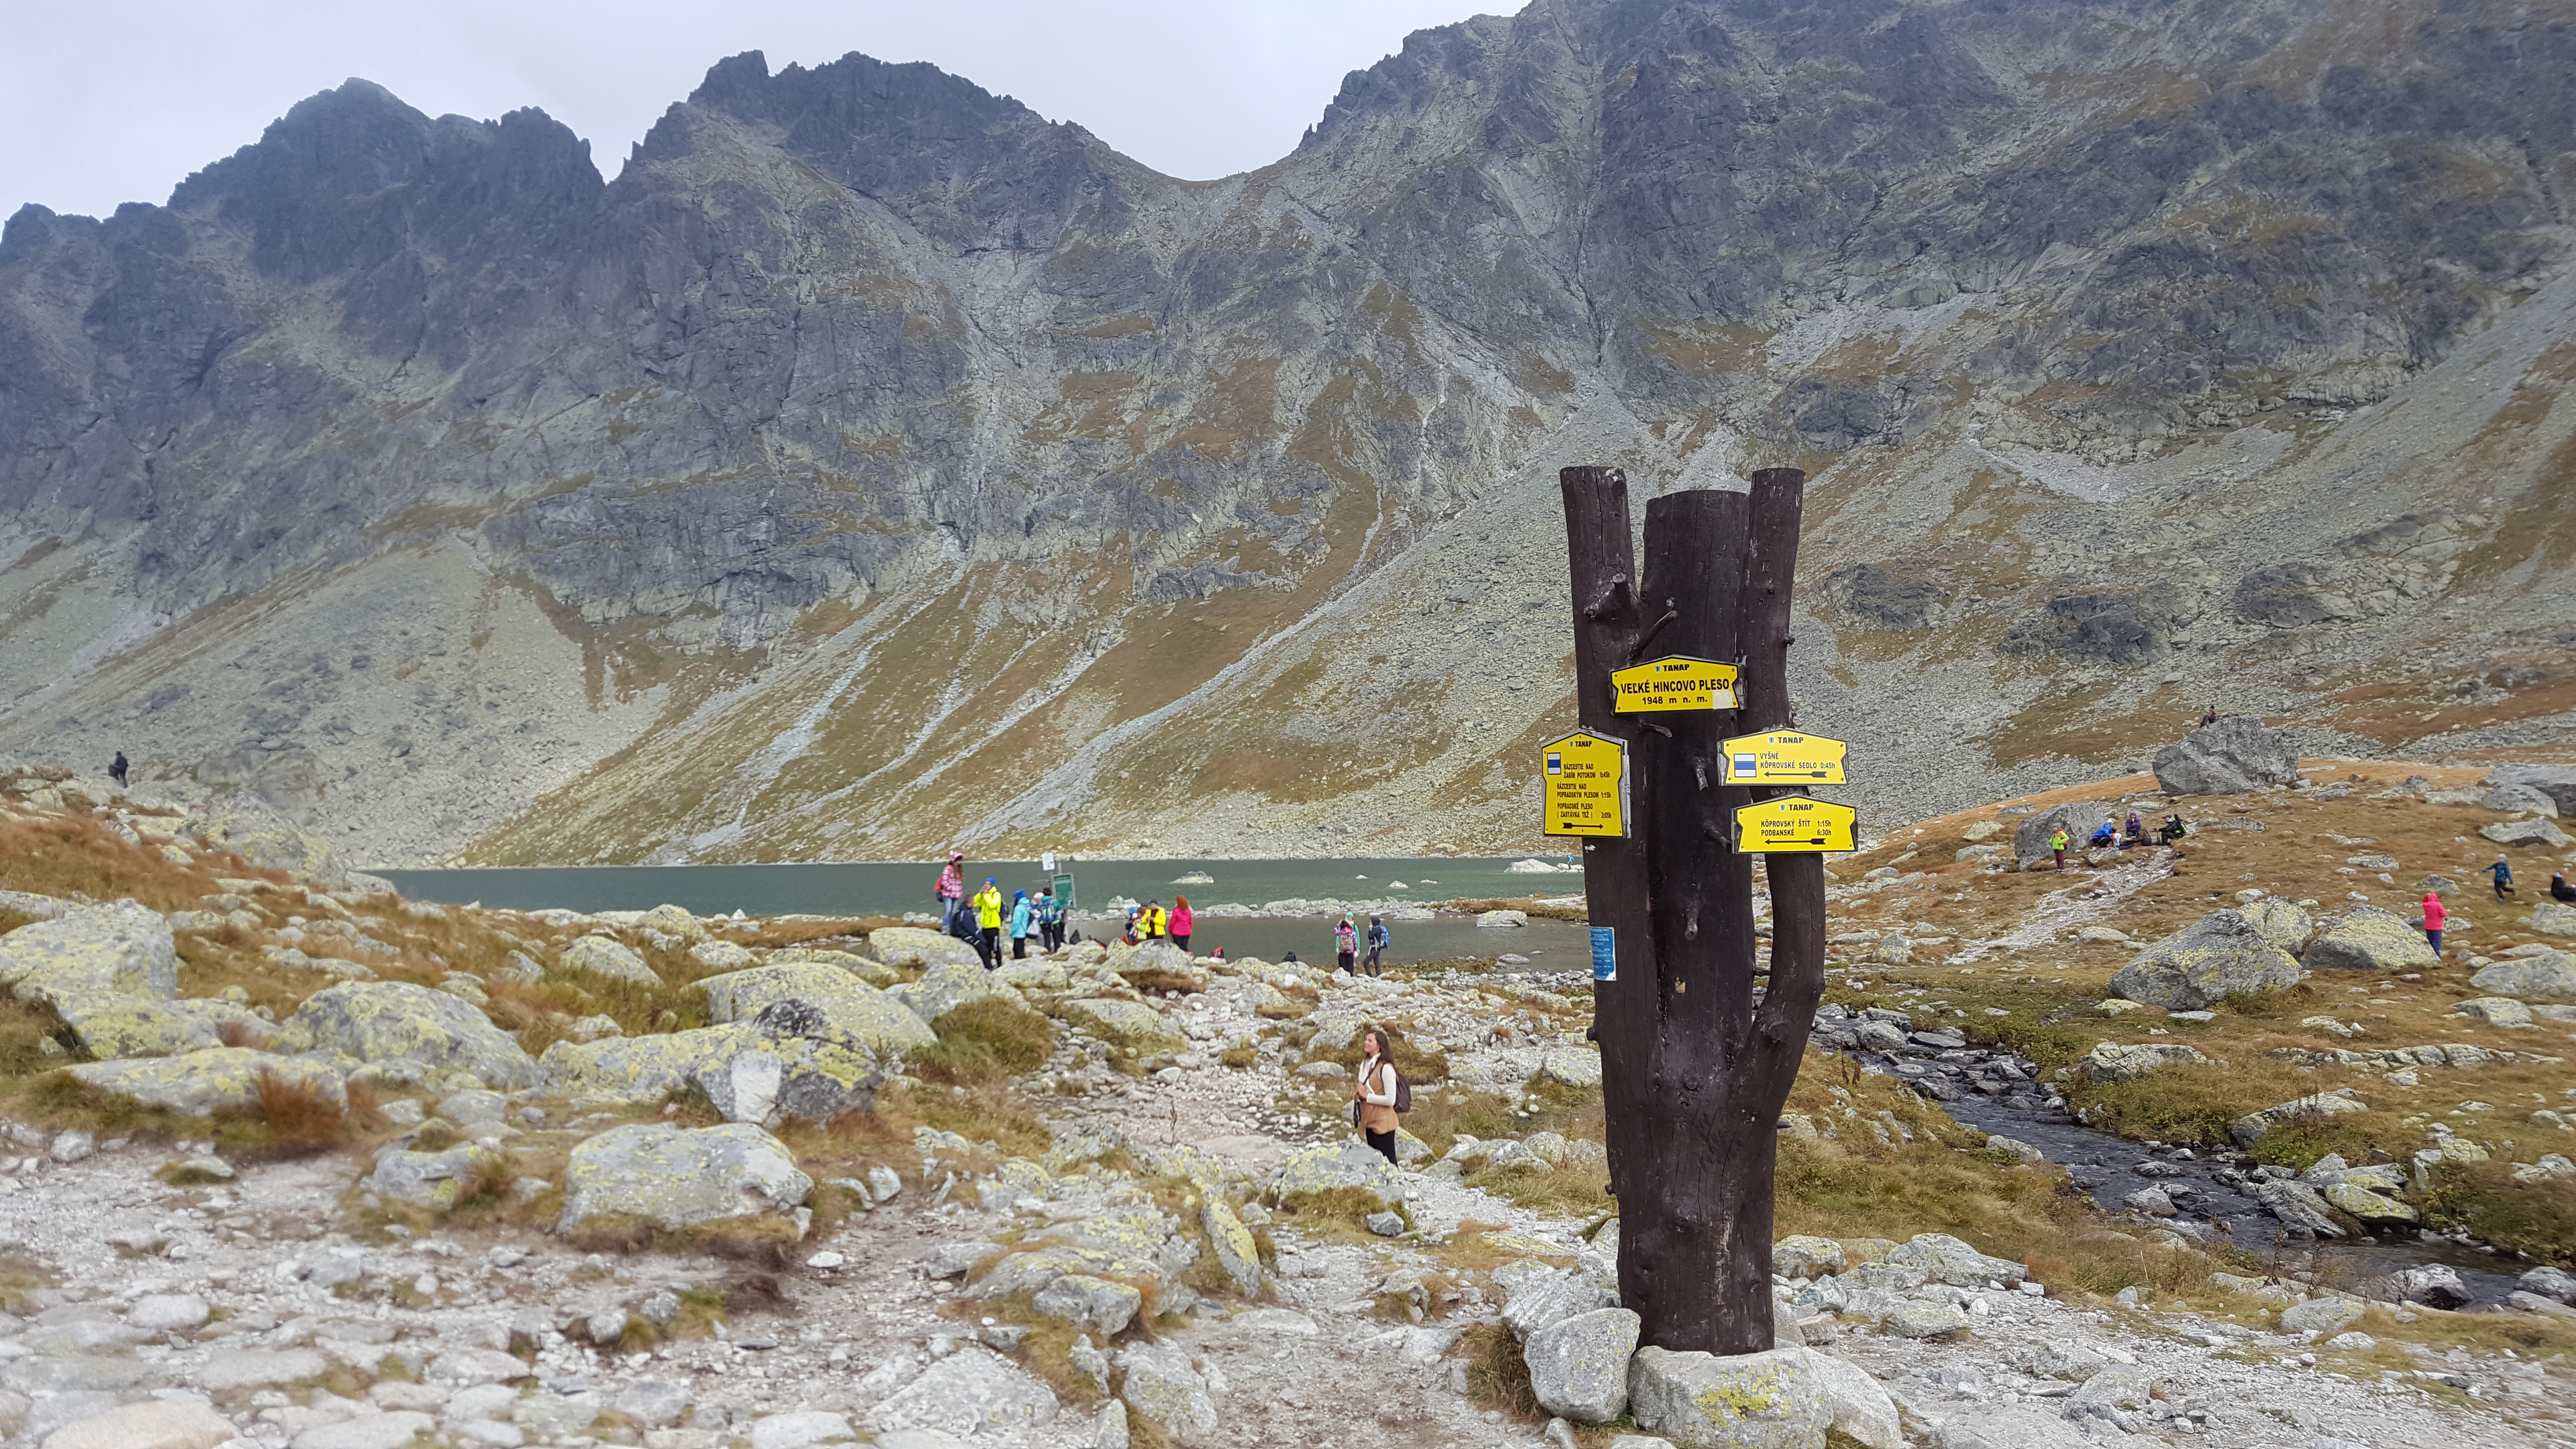 Tatra hiking trails in Slovakia - follow four colour marks not to get lost